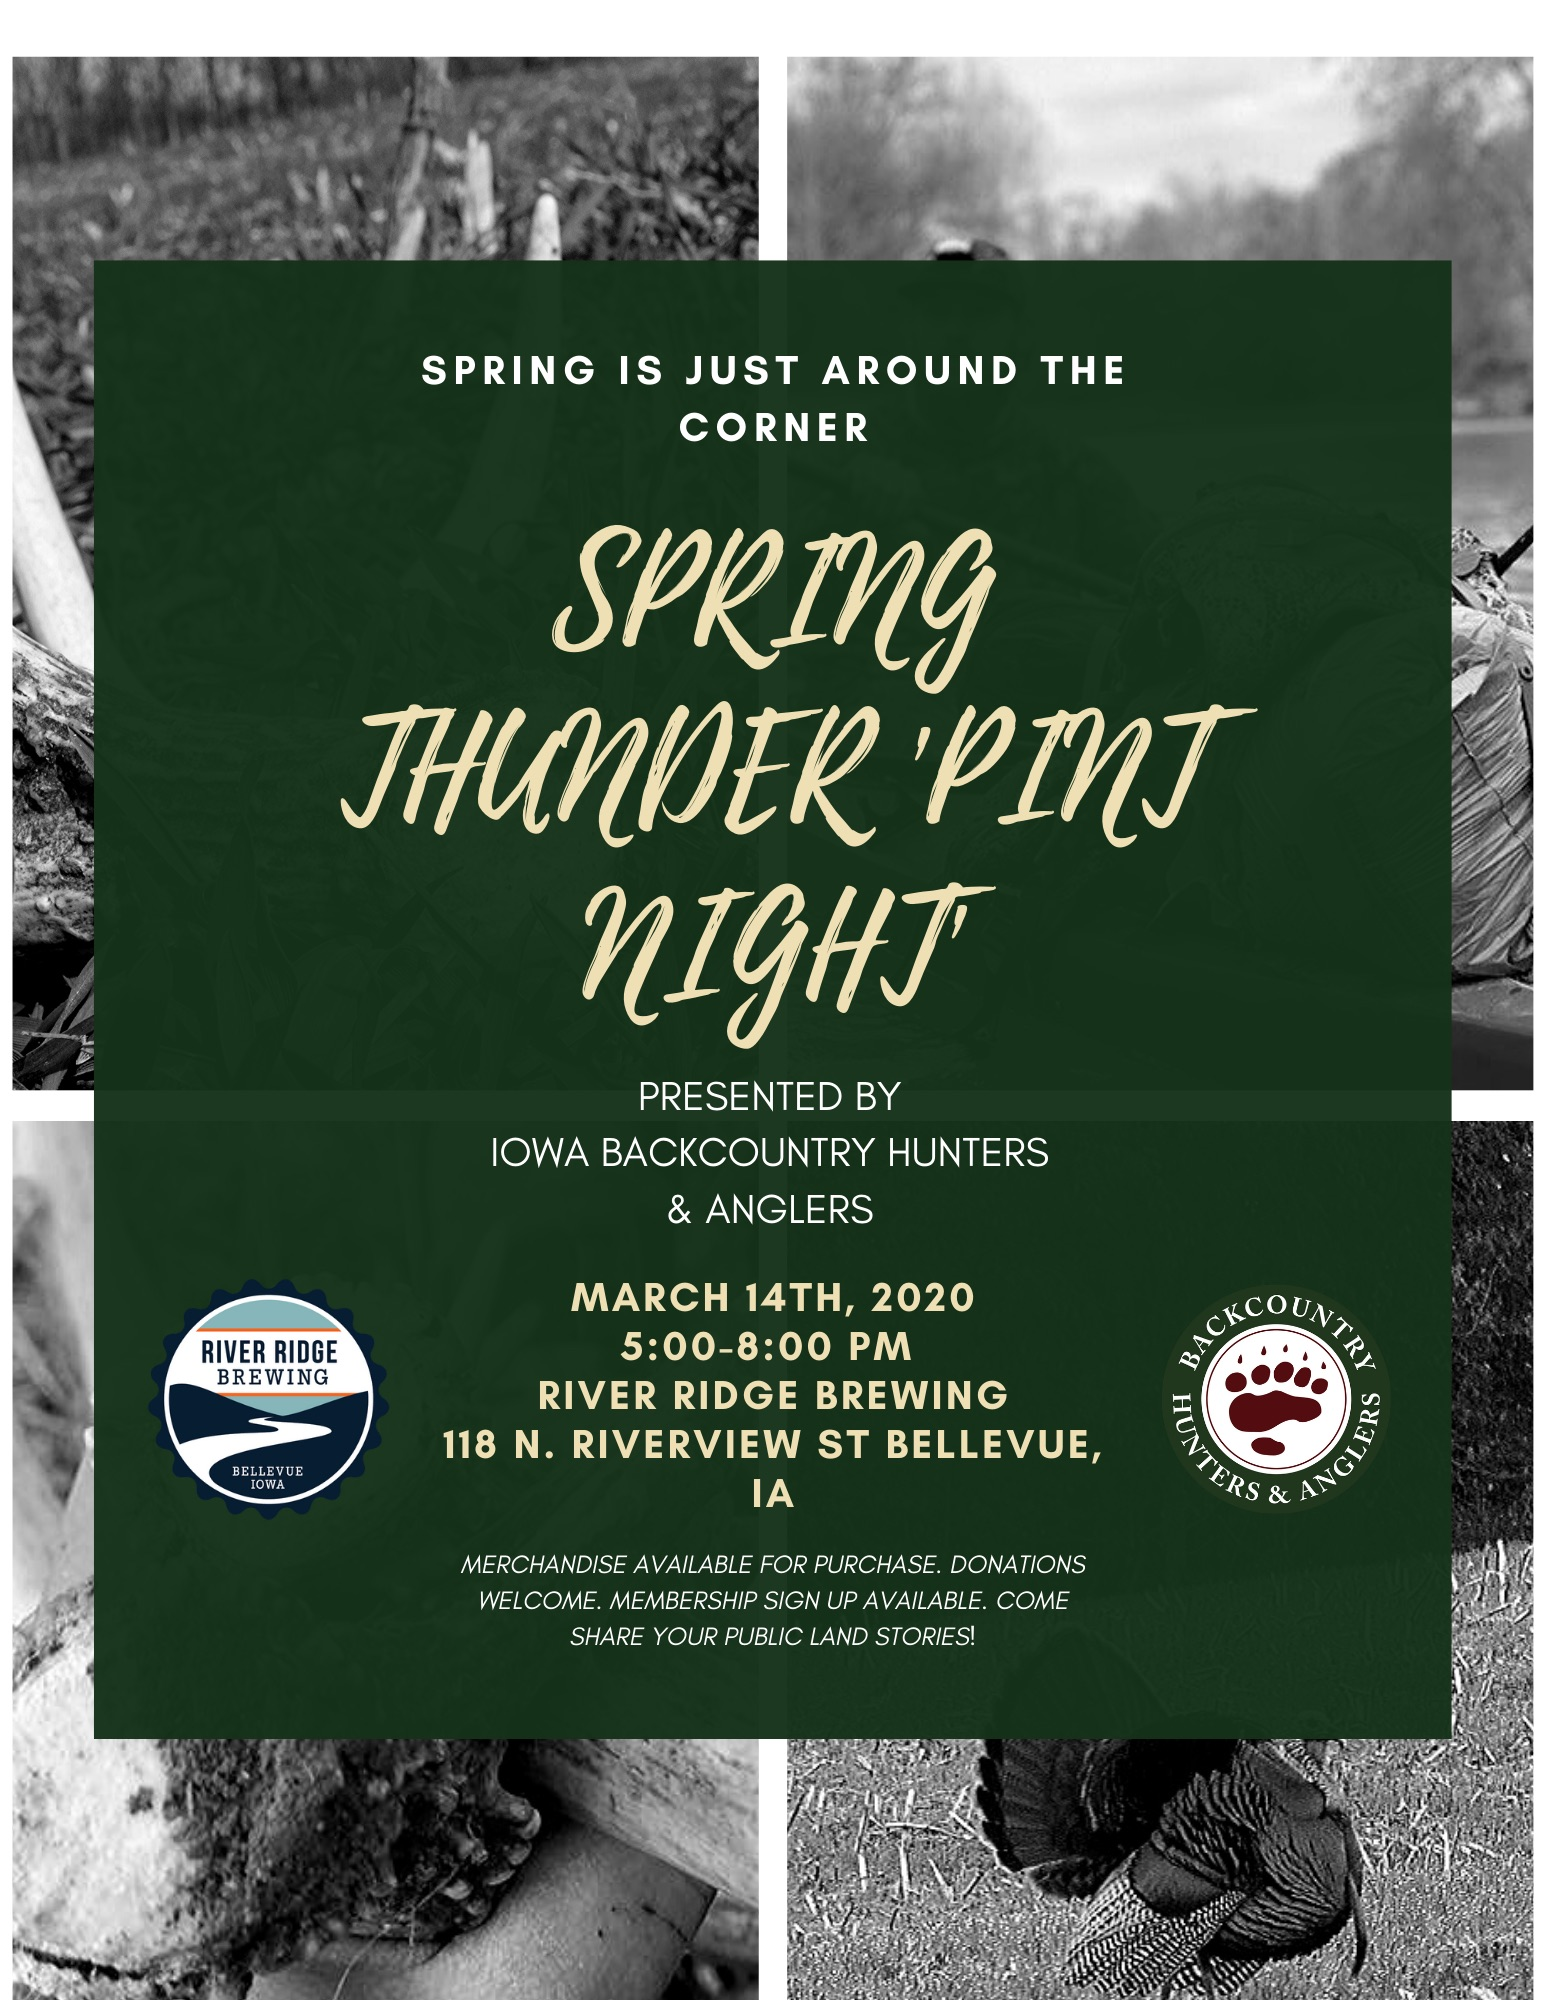 Spring_Thunder_Pint_Night.jpg